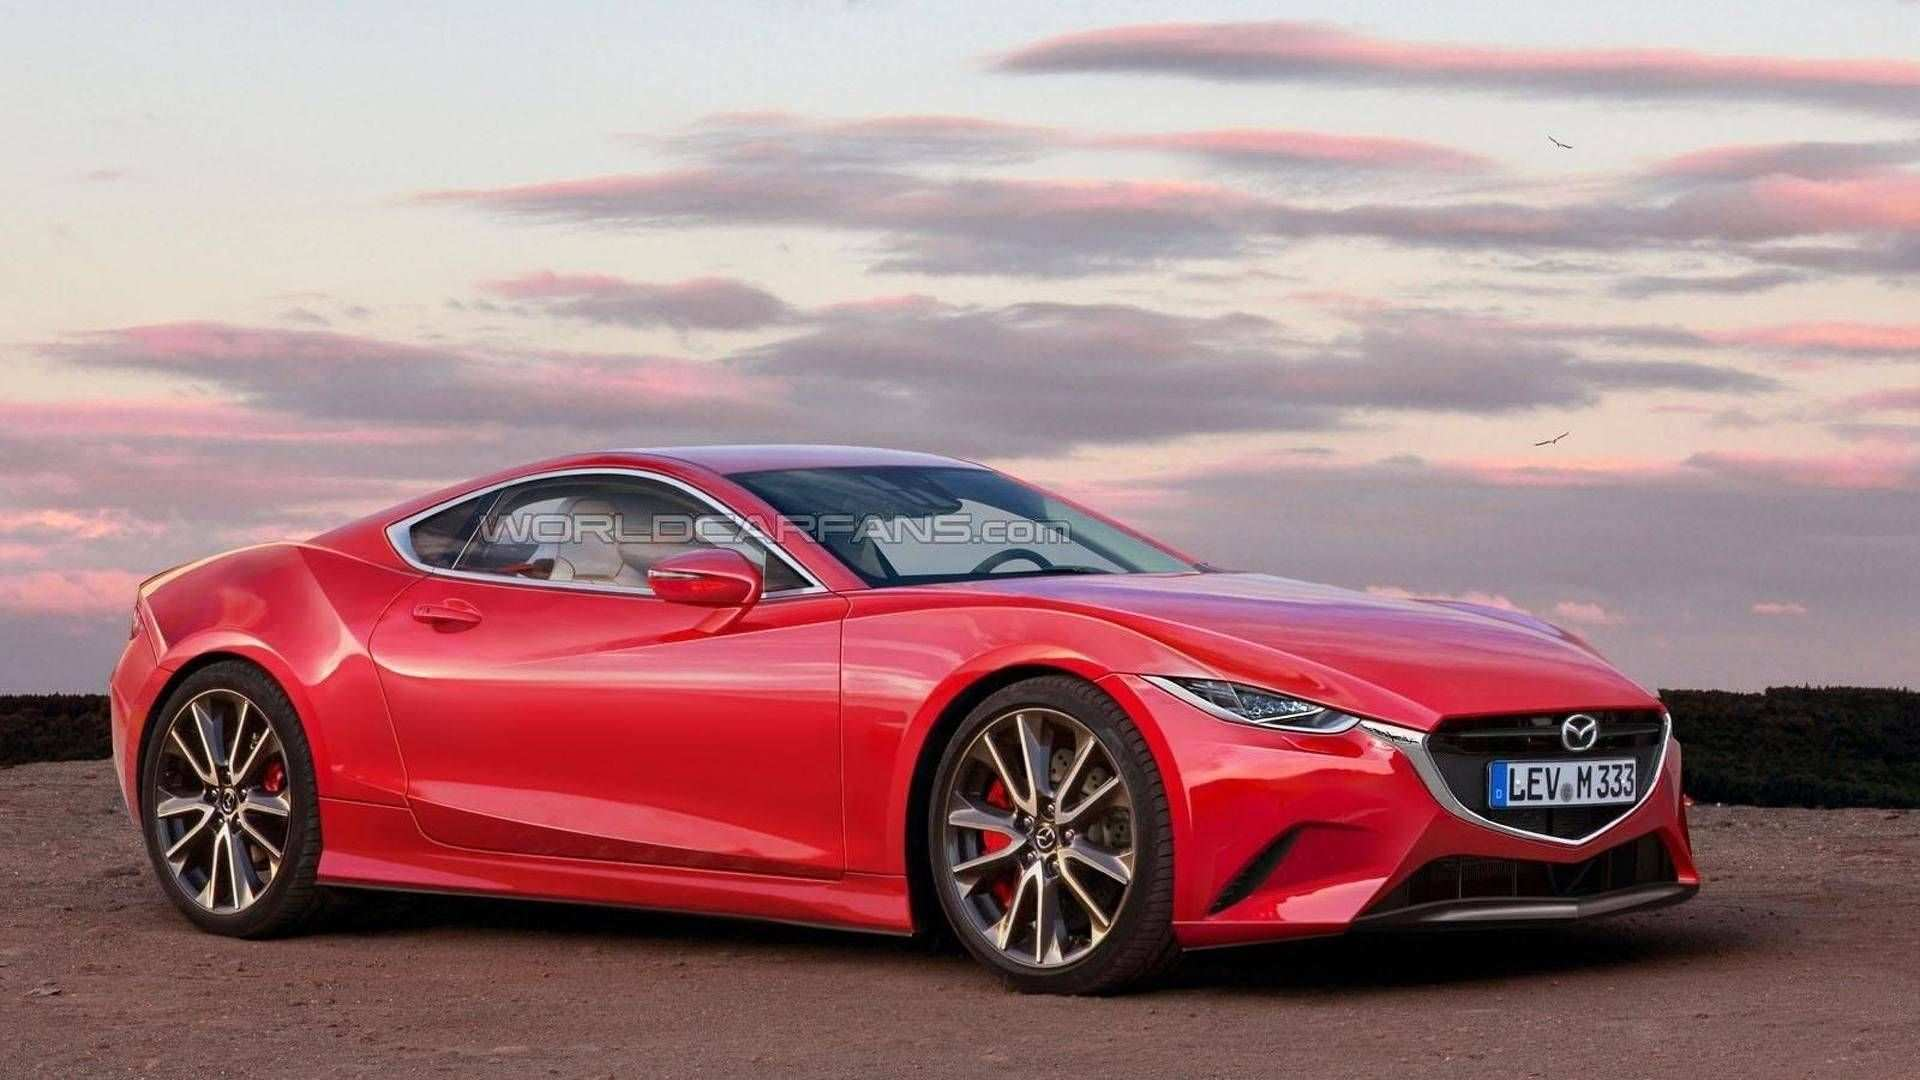 17 The 2019 Mazda RX7s Rumors